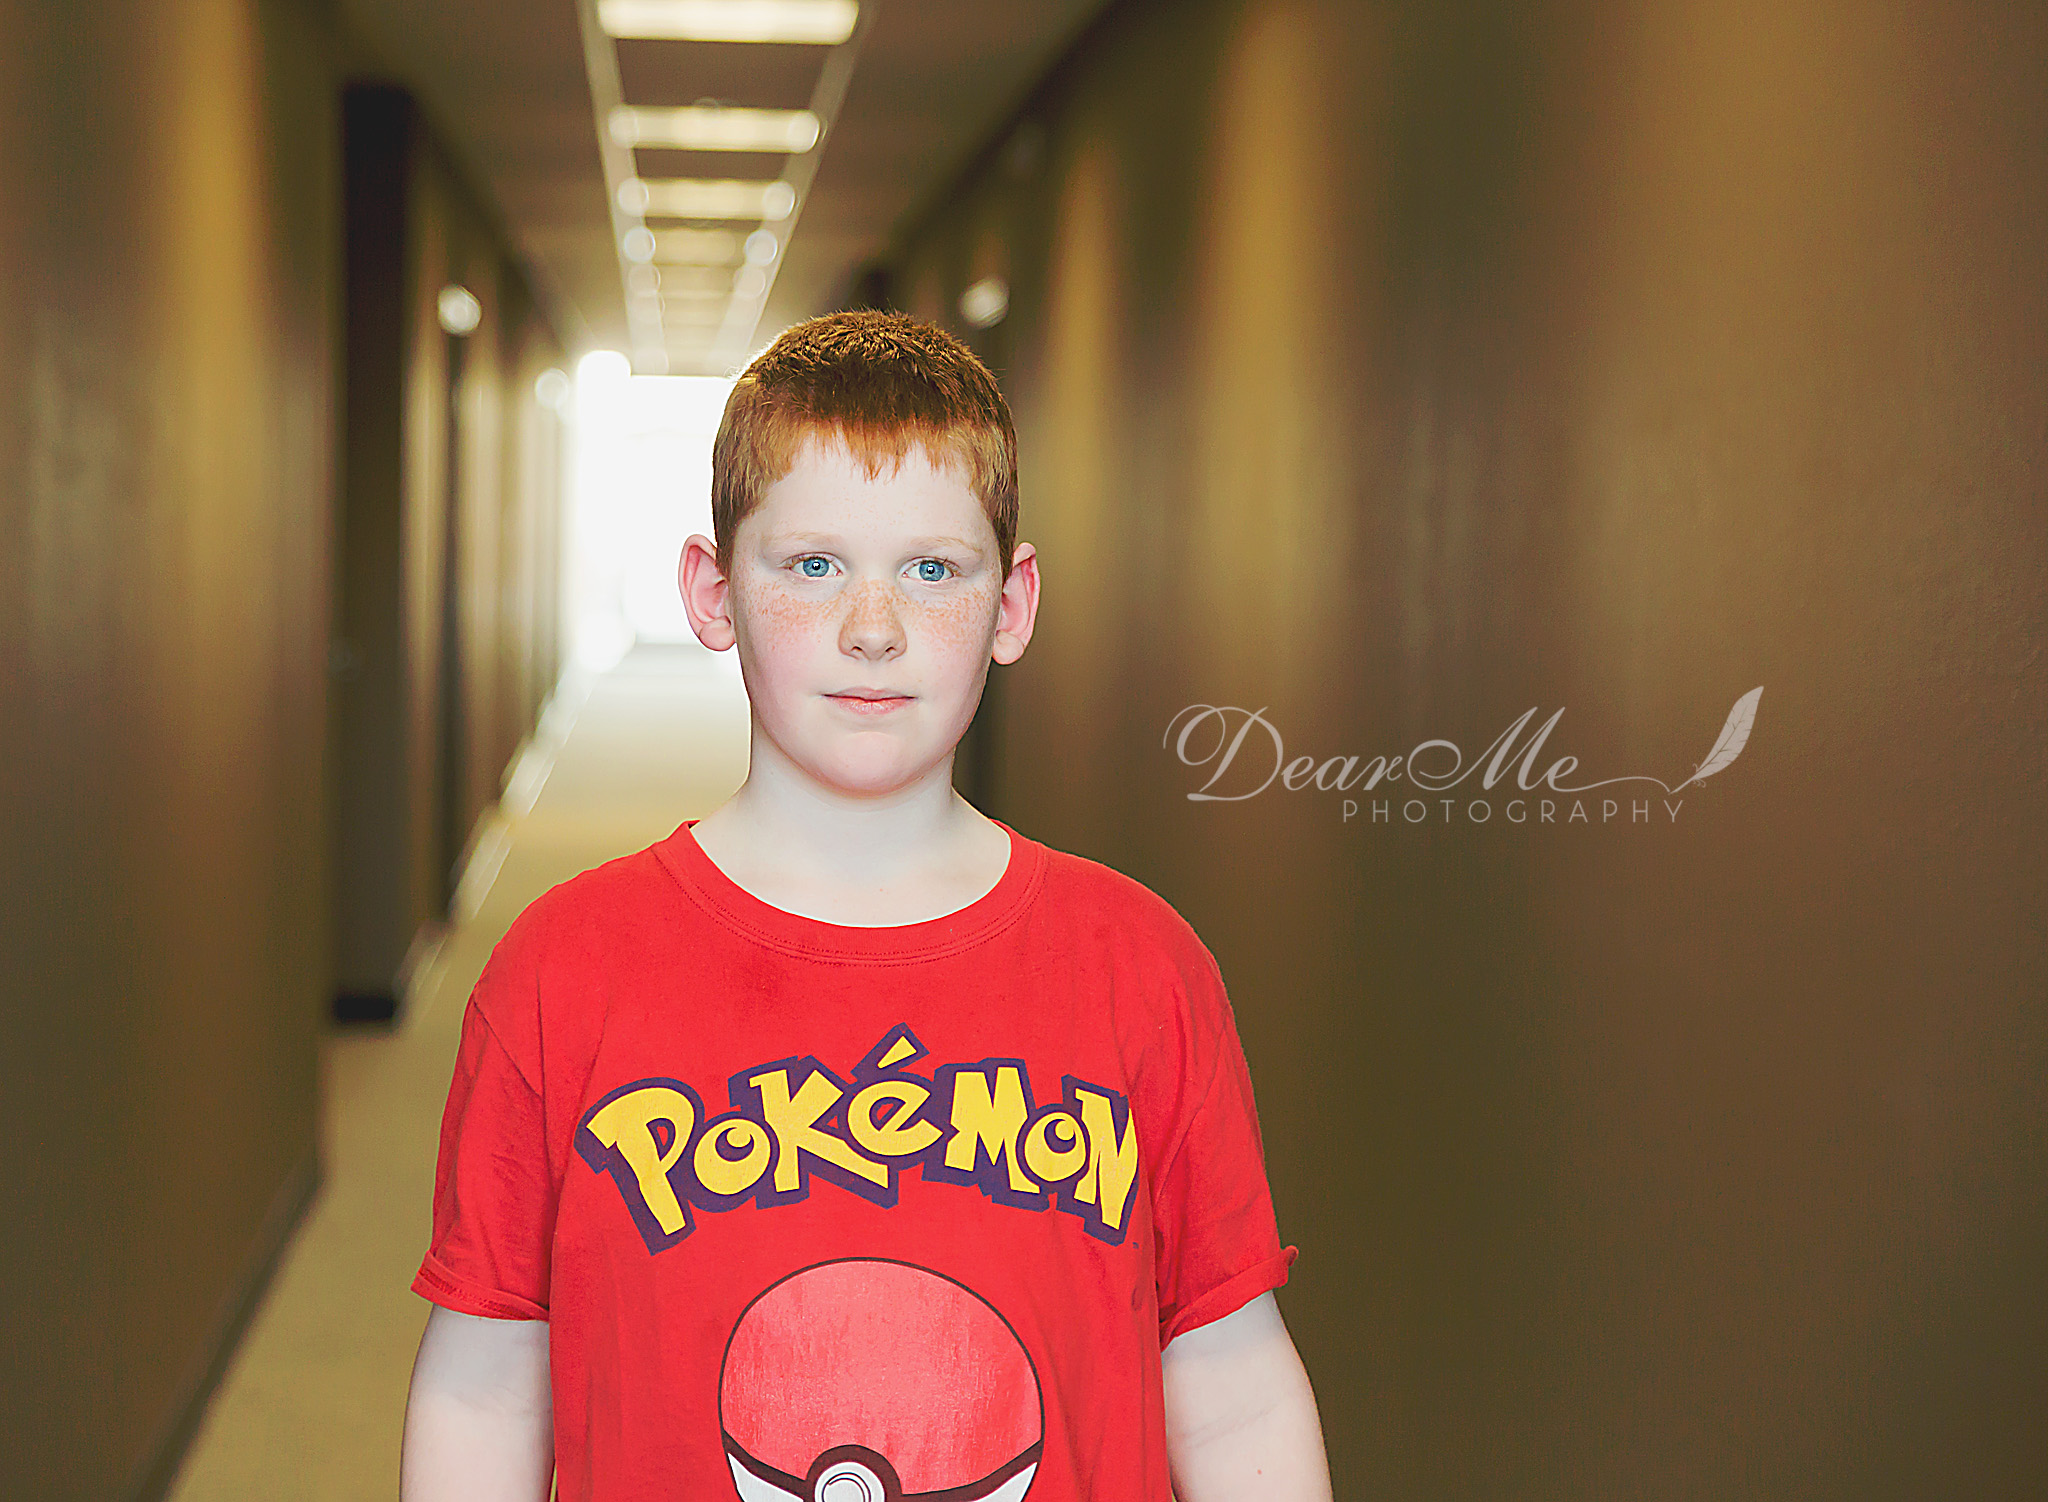 dear me photography bismarck child photographer boy standing in hallway looking just past the camera